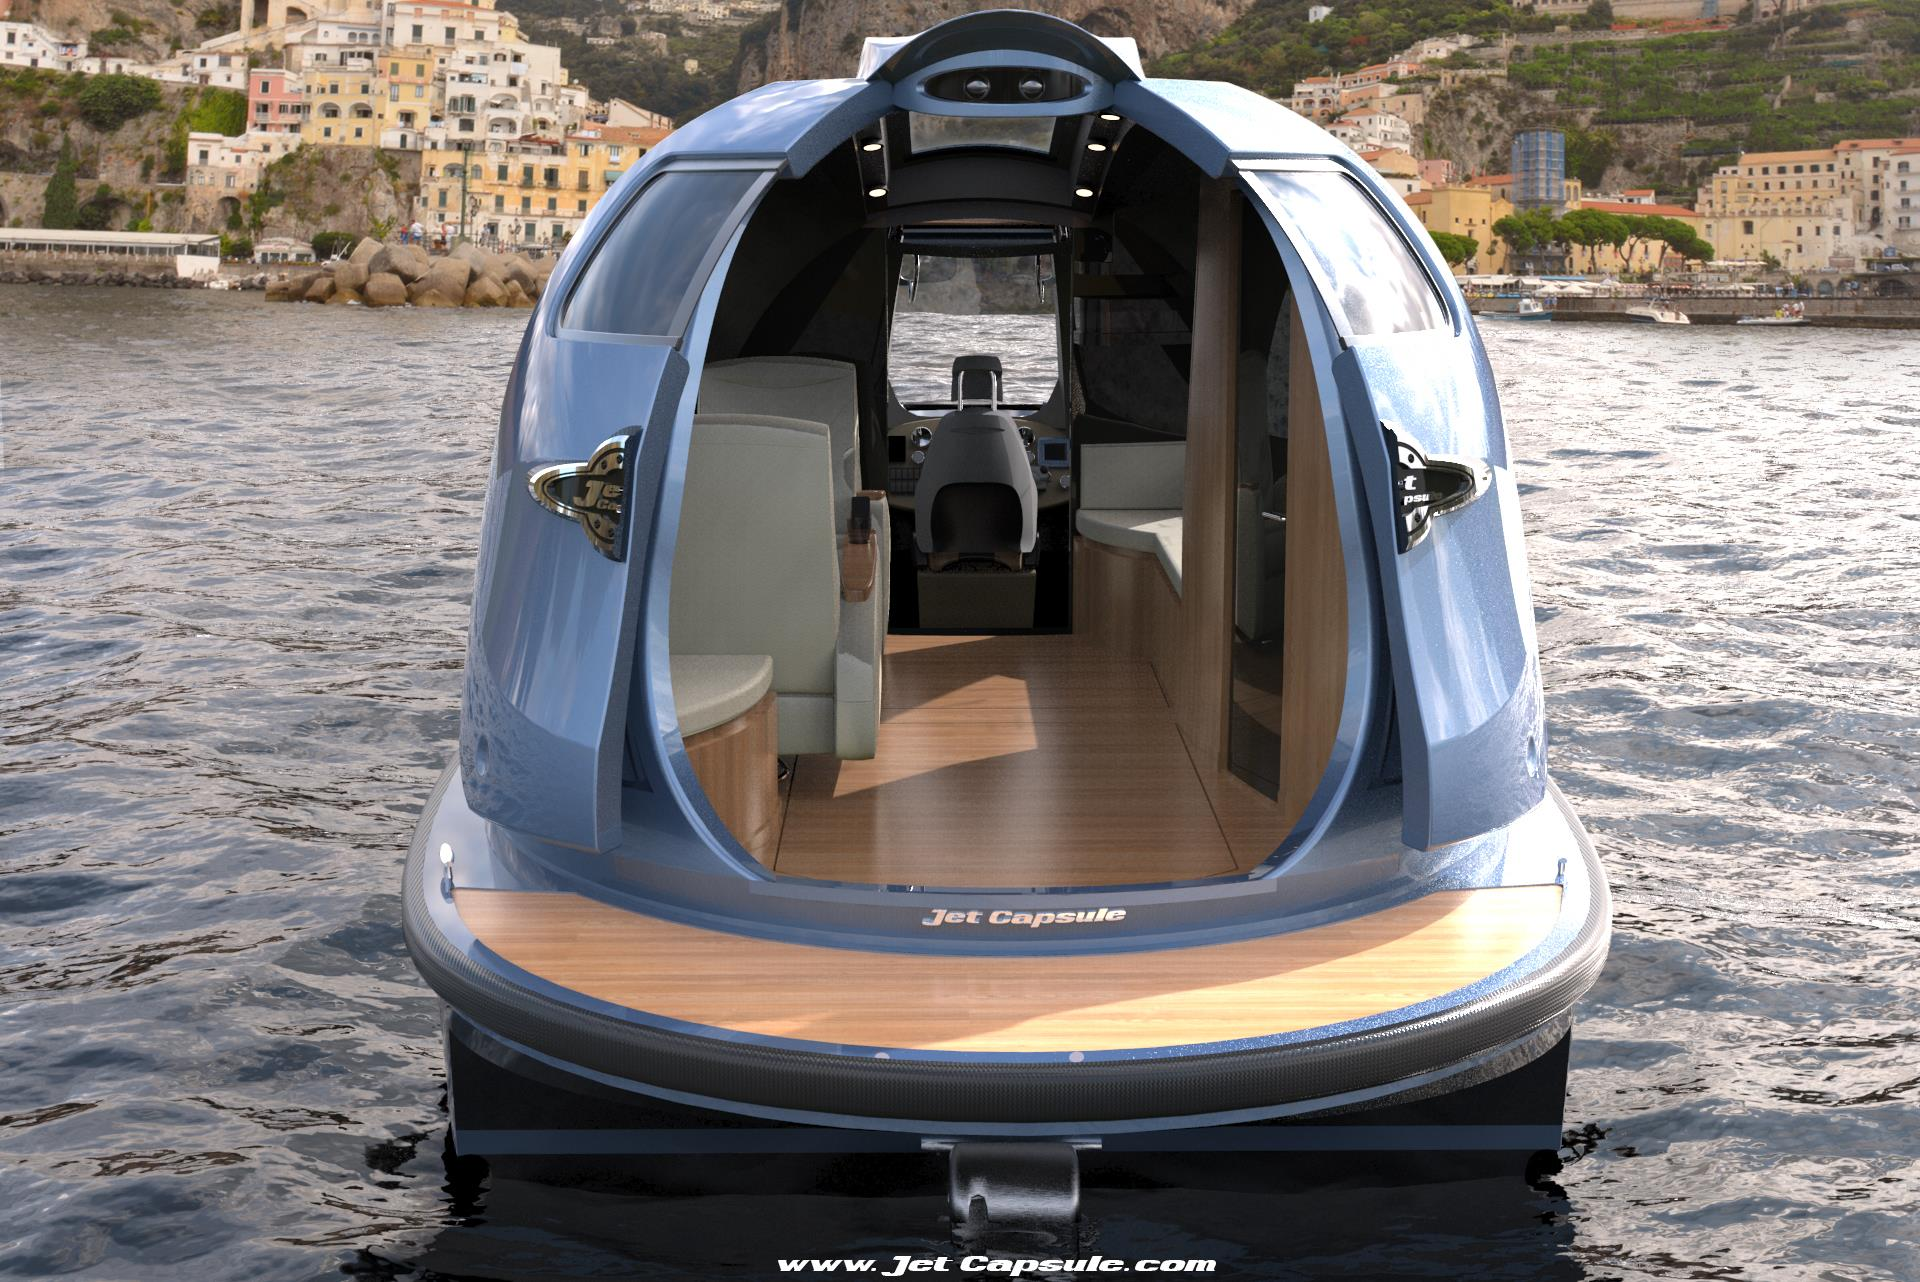 Simple bathroom designs green - Off Grid Floating Home Travel The World In A Jet Capsule